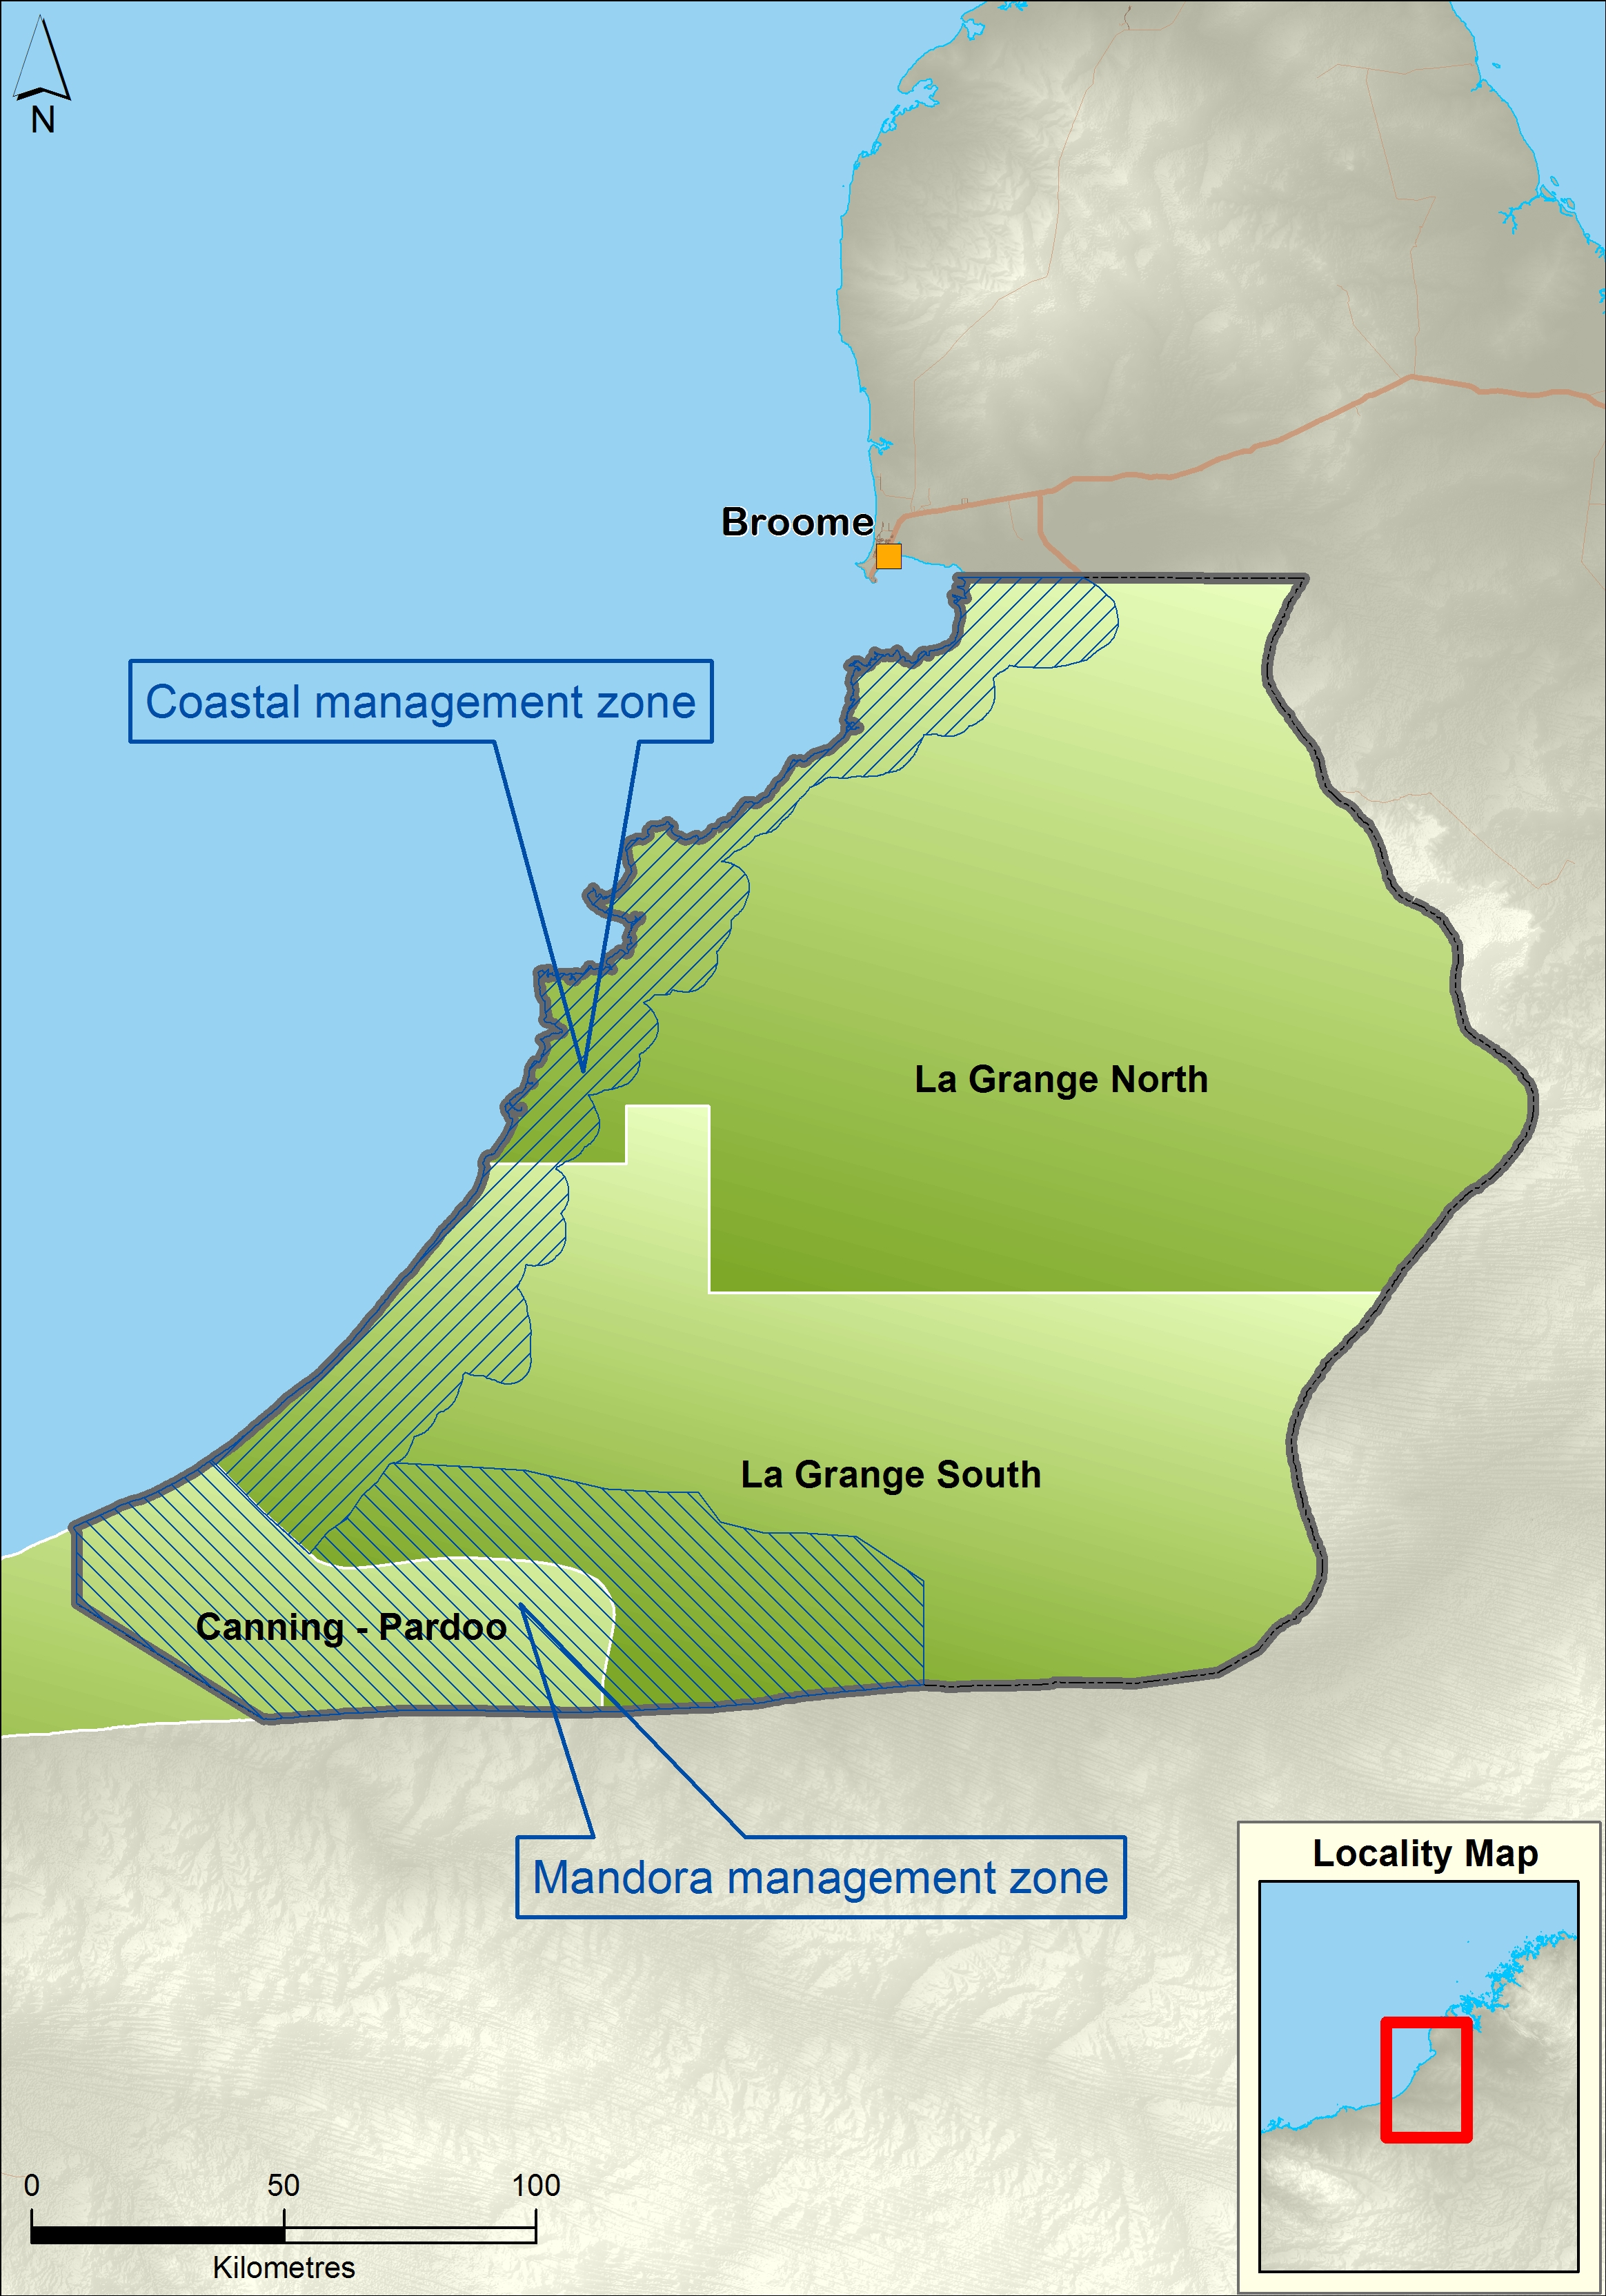 La Grange plan area, subareas and management zones